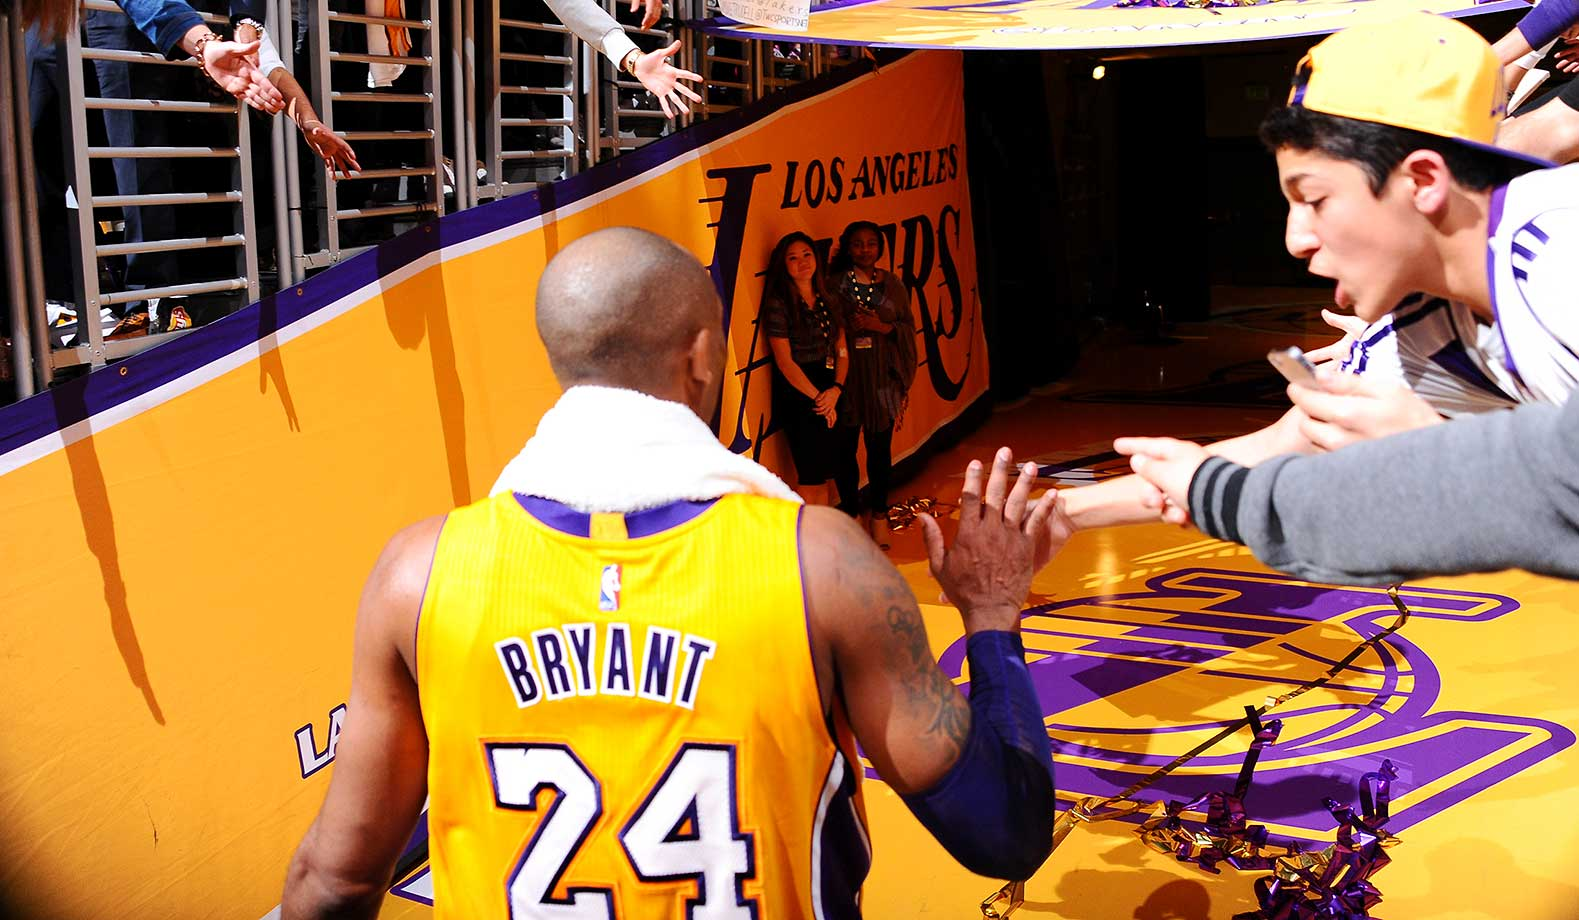 Kobe Bryant shakes hands with the fans after the game against the Minnesota Timberwolves.